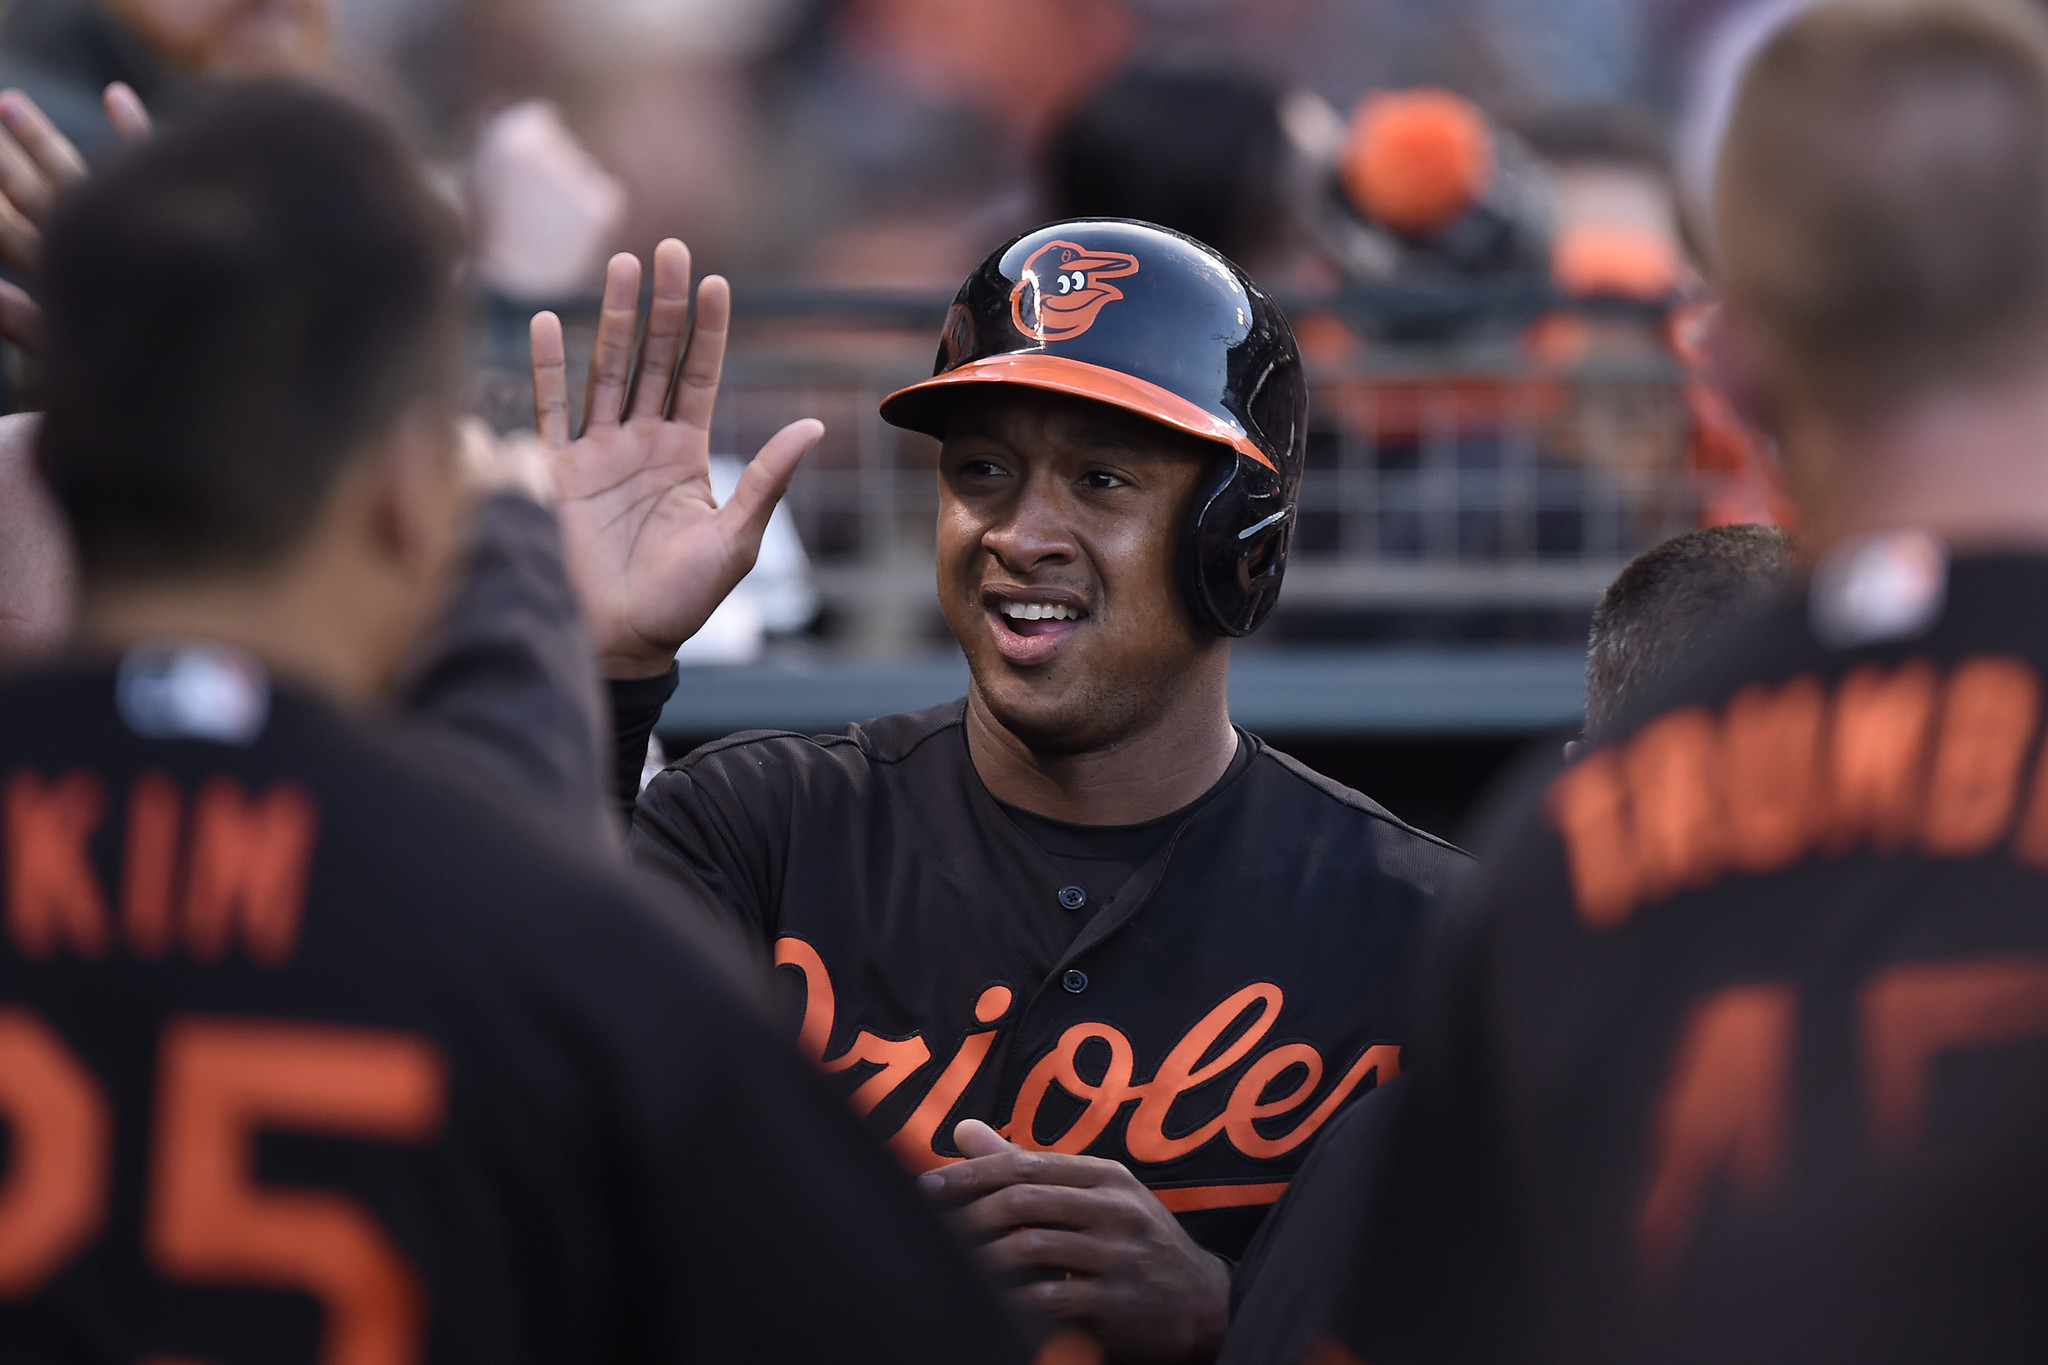 Bal-orioles-on-deck-what-to-watch-monday-vs-red-sox-20160816